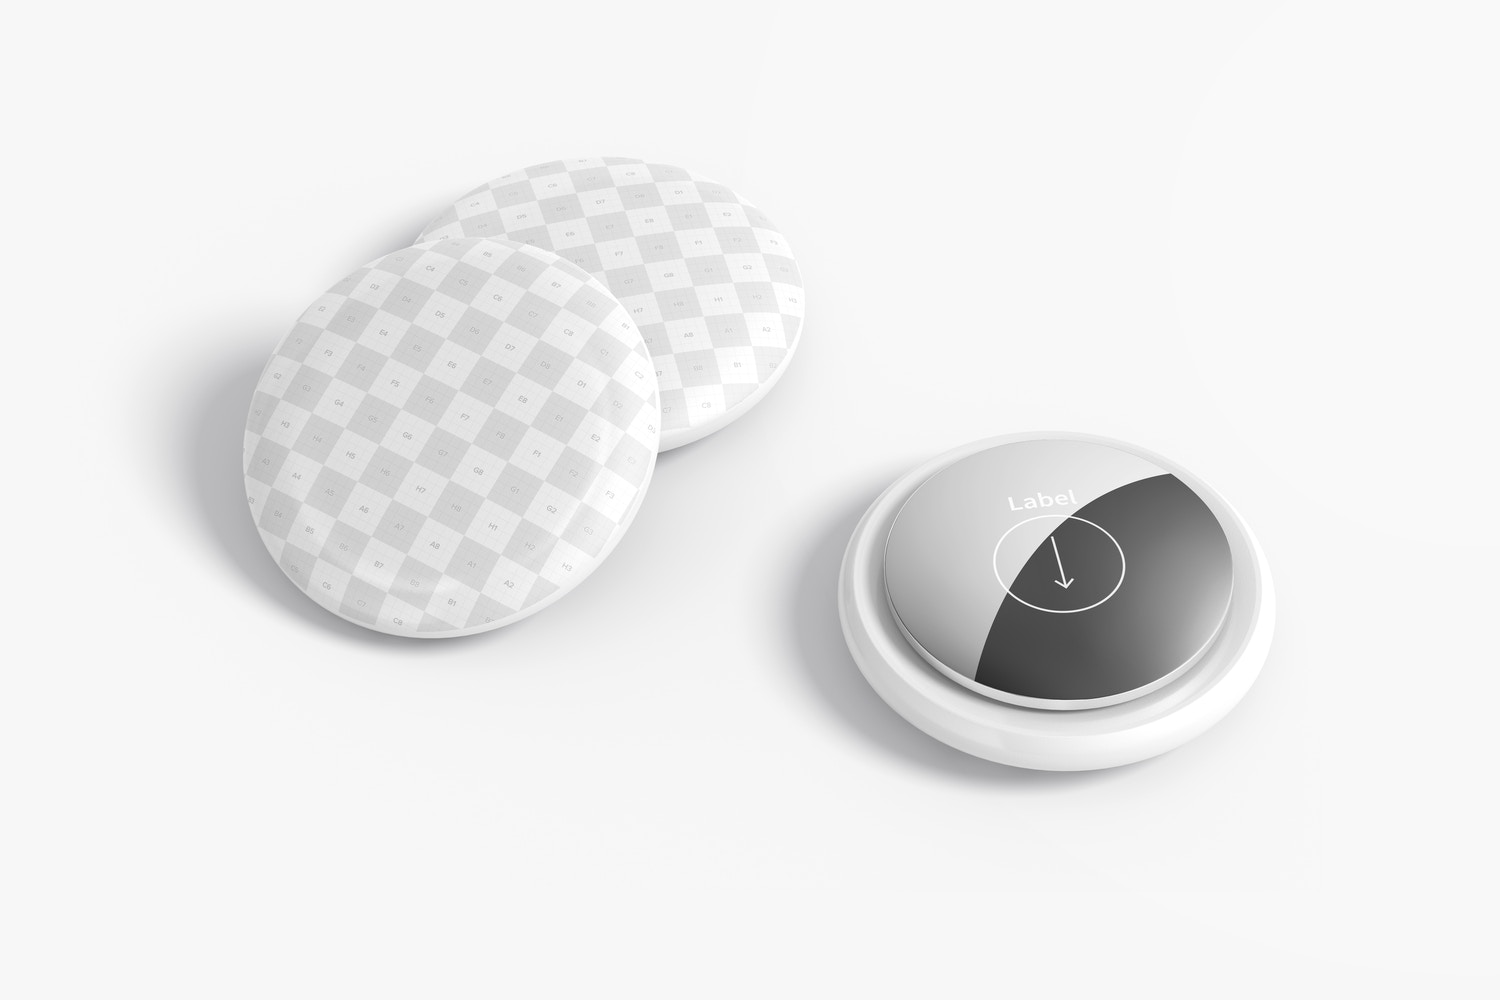 AirTags Mockup, Perspective View 02